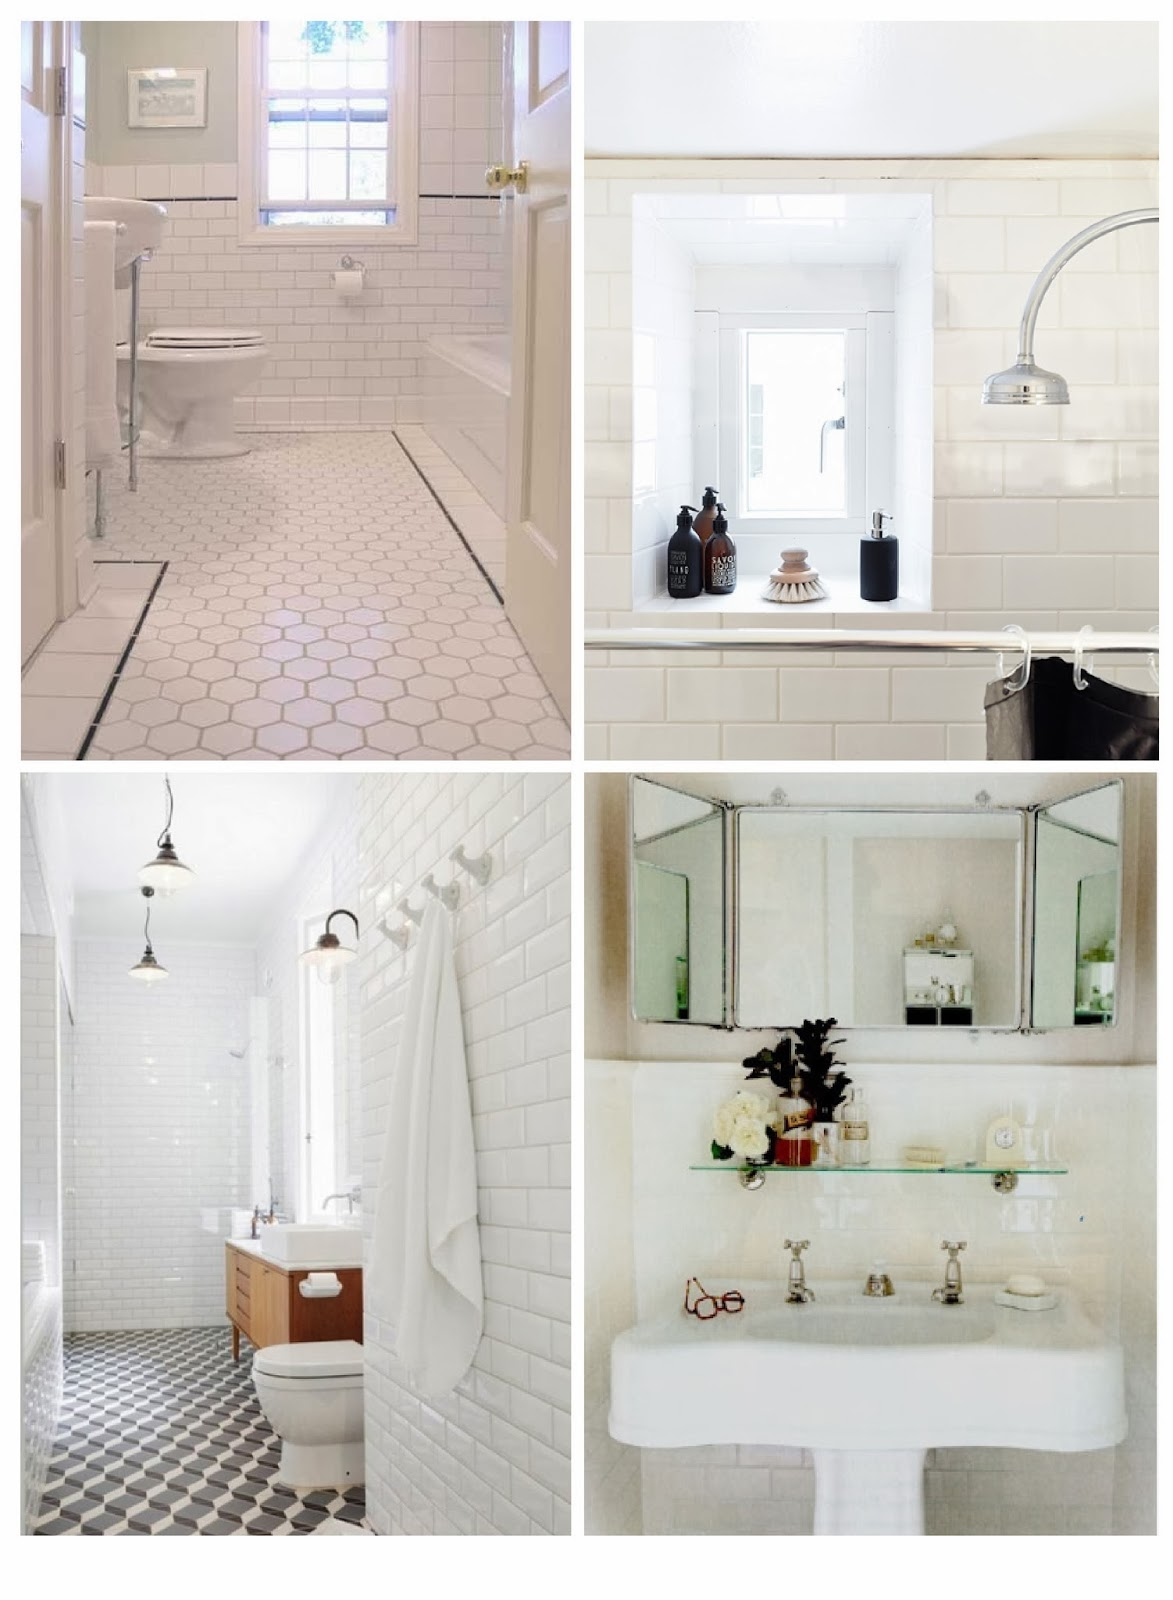 Bathroom Designs Tile Patterns